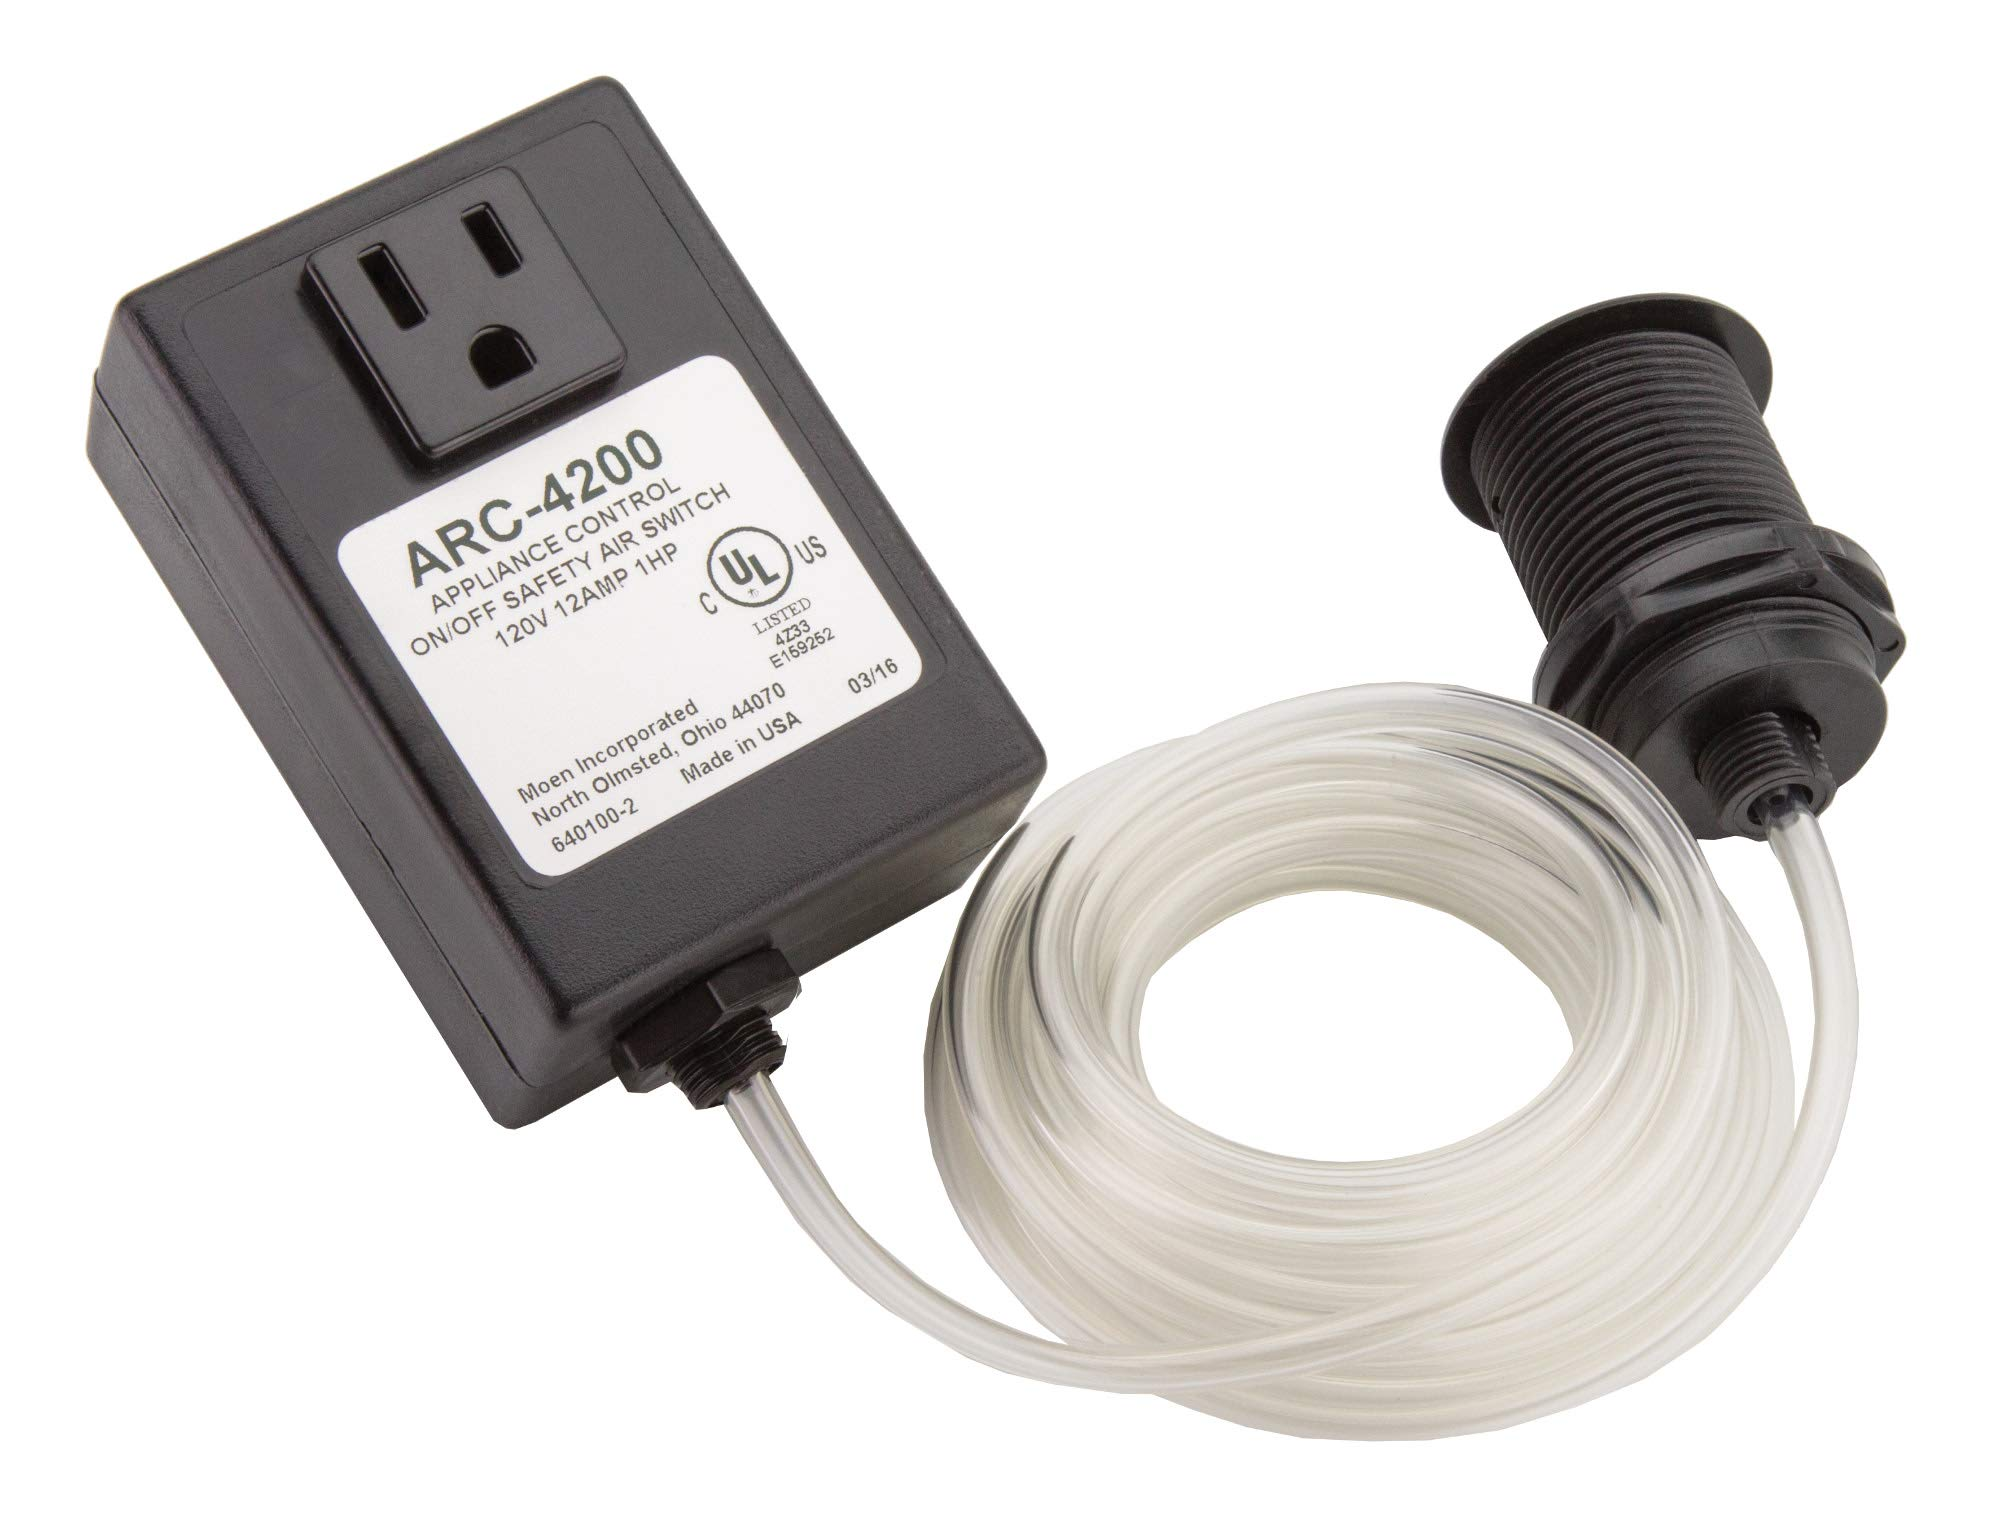 Waste King Garbage Disposal Air Switch Base and Control Unit - ARC-4200 by Waste King (Image #1)